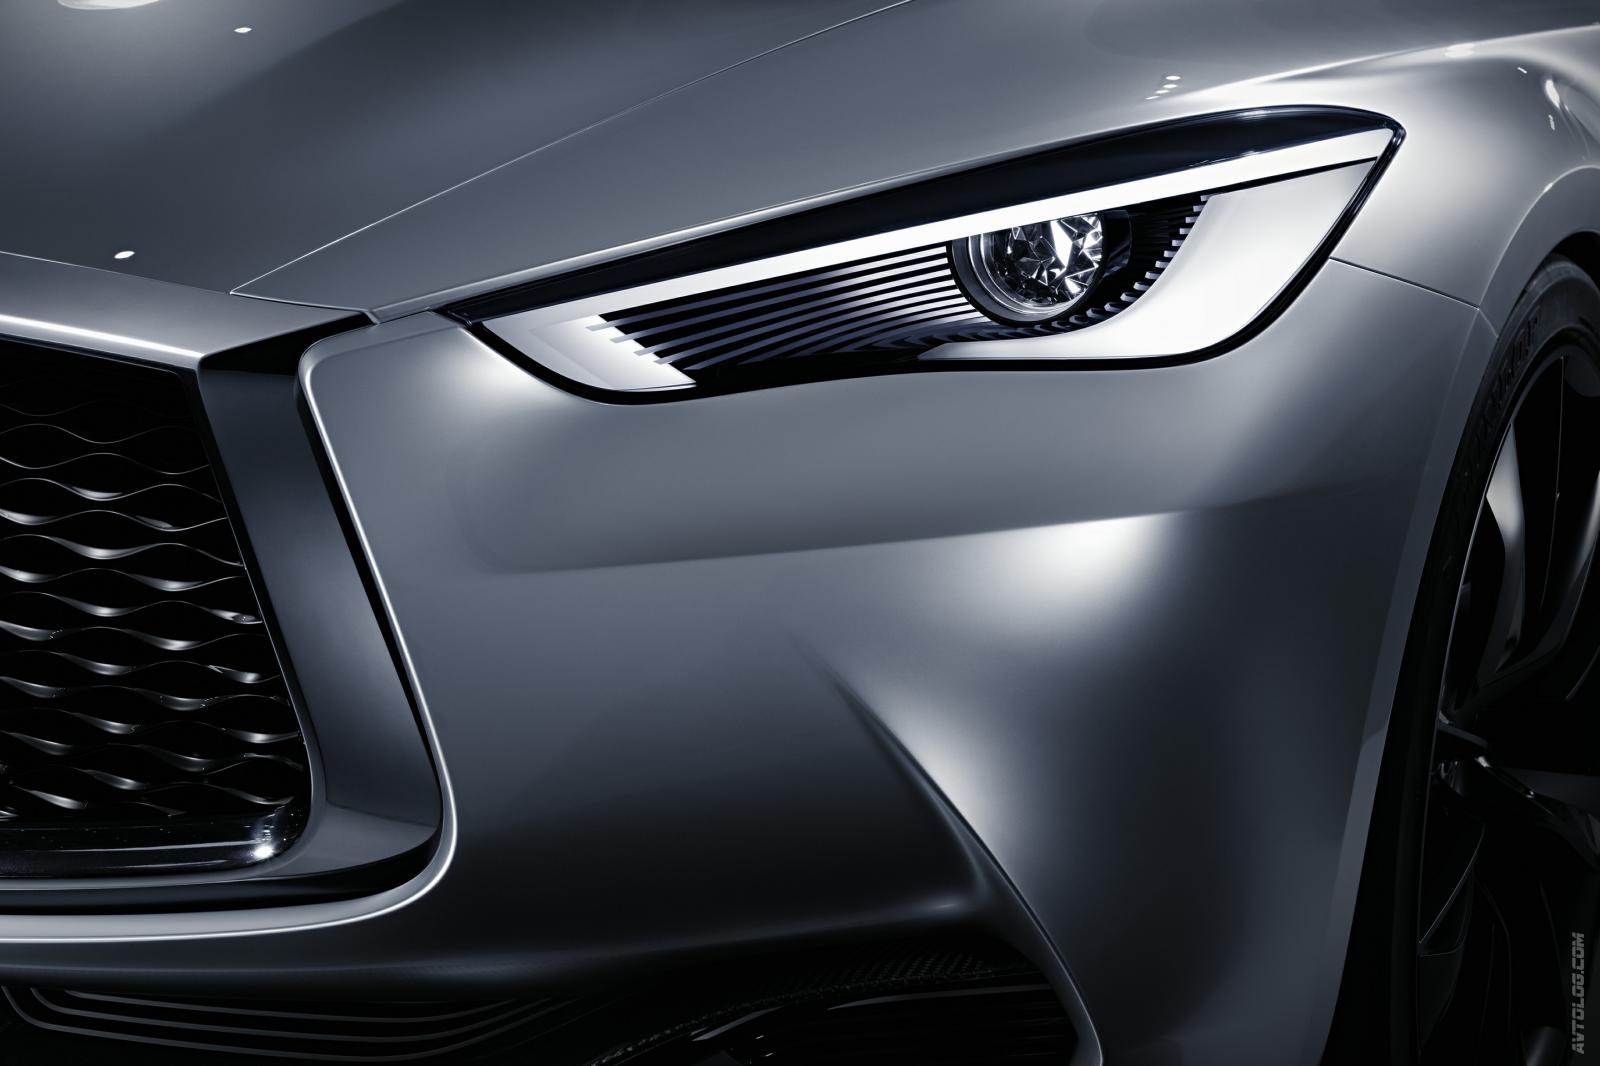 2018 Infiniti QX70 Features